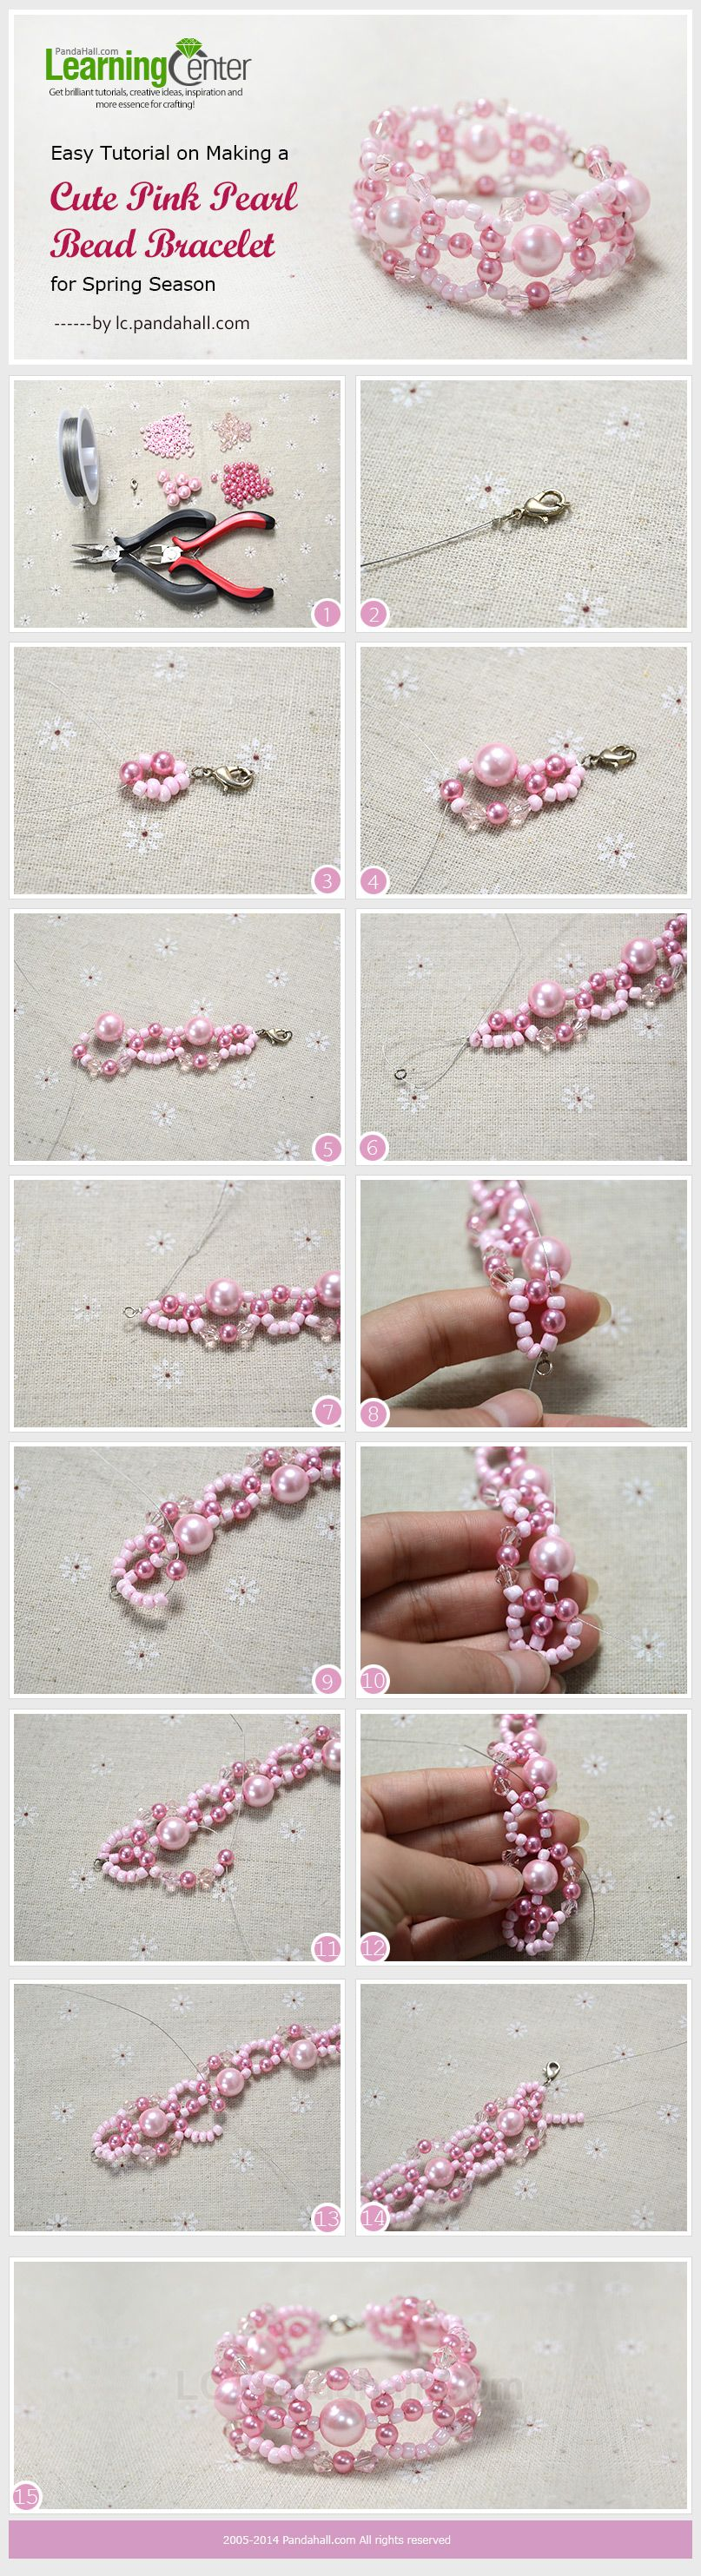 easy tutorial on making a cute pink pearl bead bracelet for spring